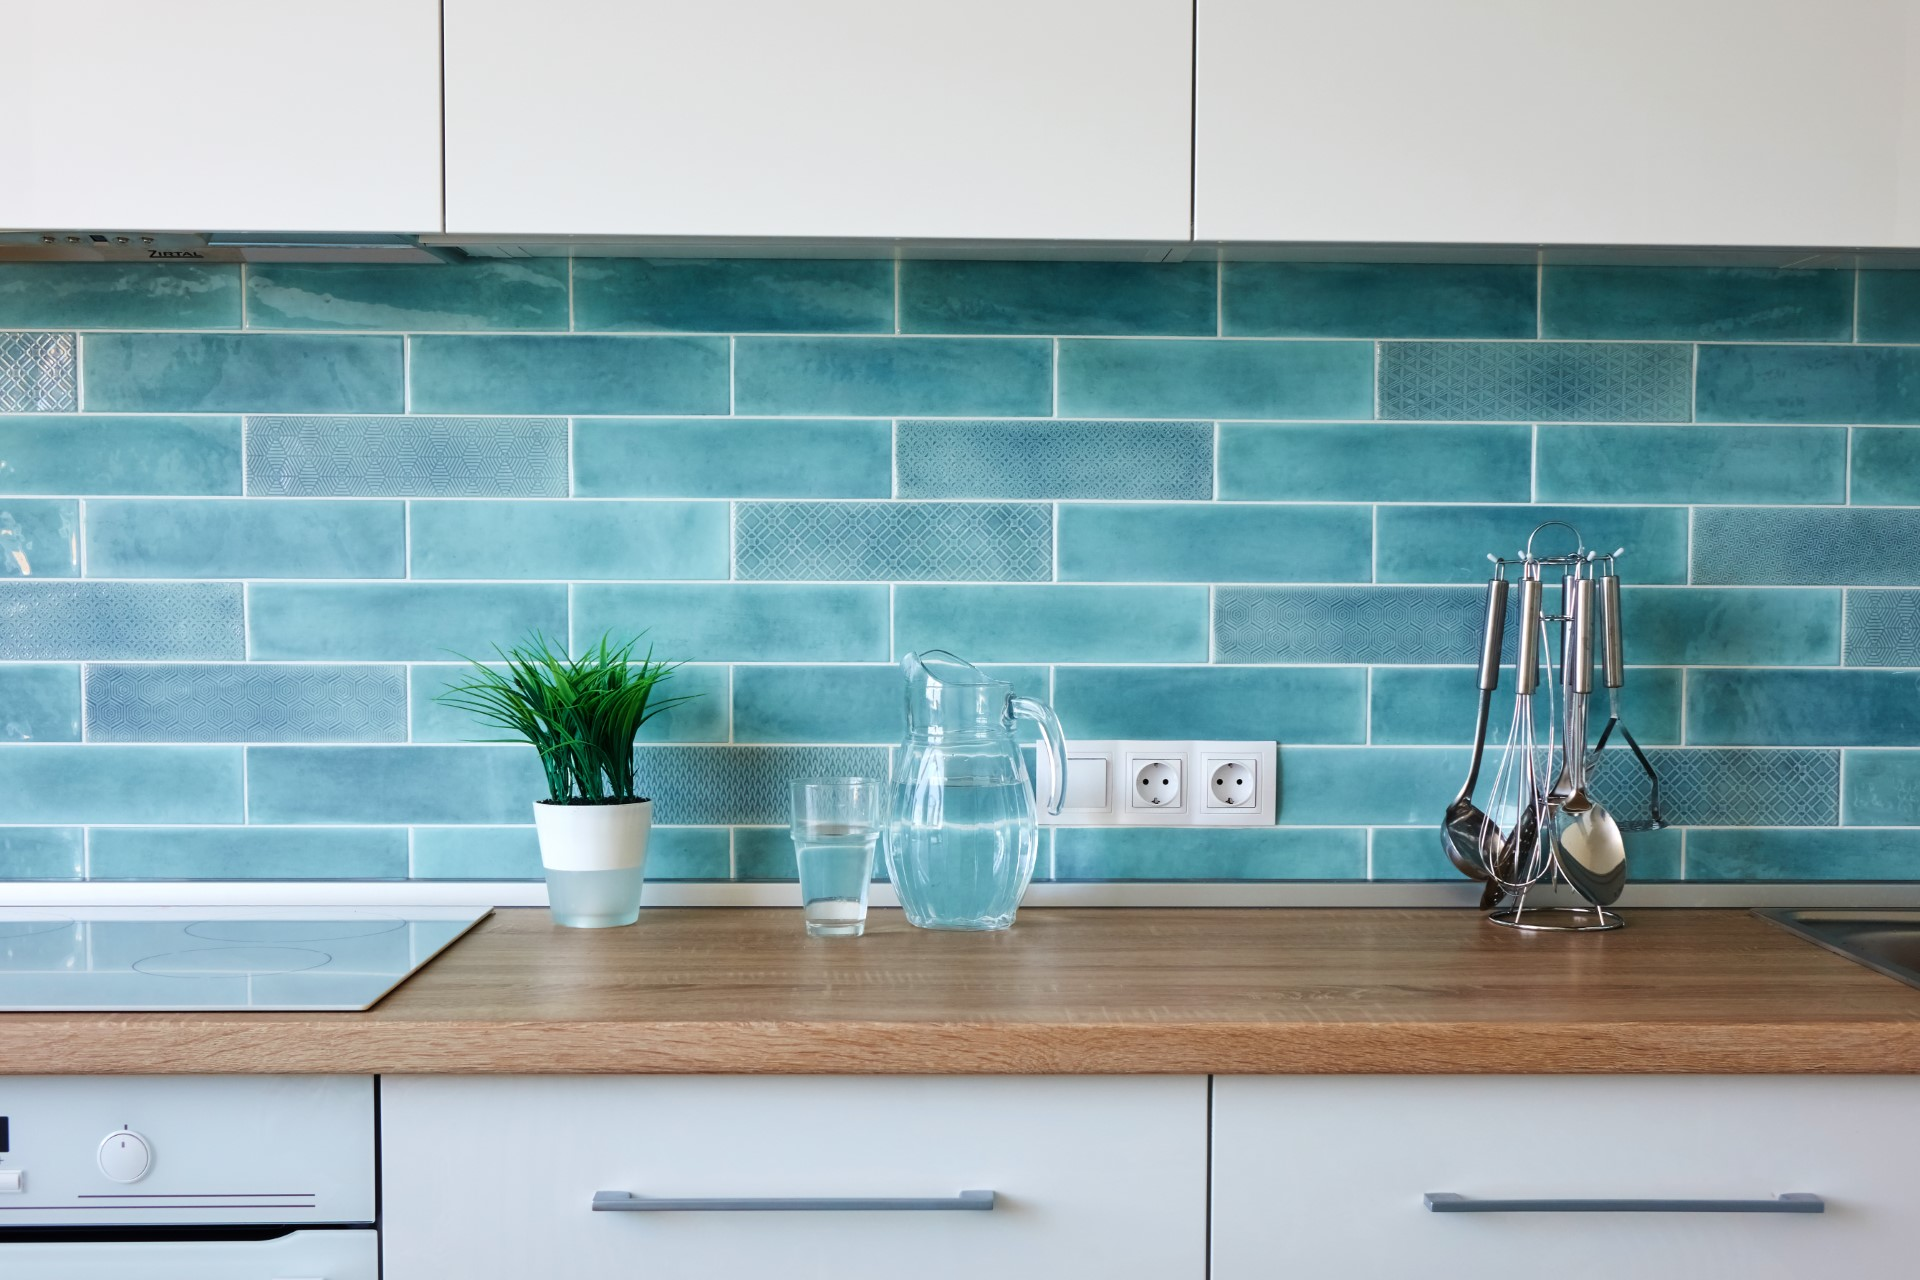 A blue backsplash coupled with a natural wood slab for a countertop is a different design that helps distinguish your kitchen from others.